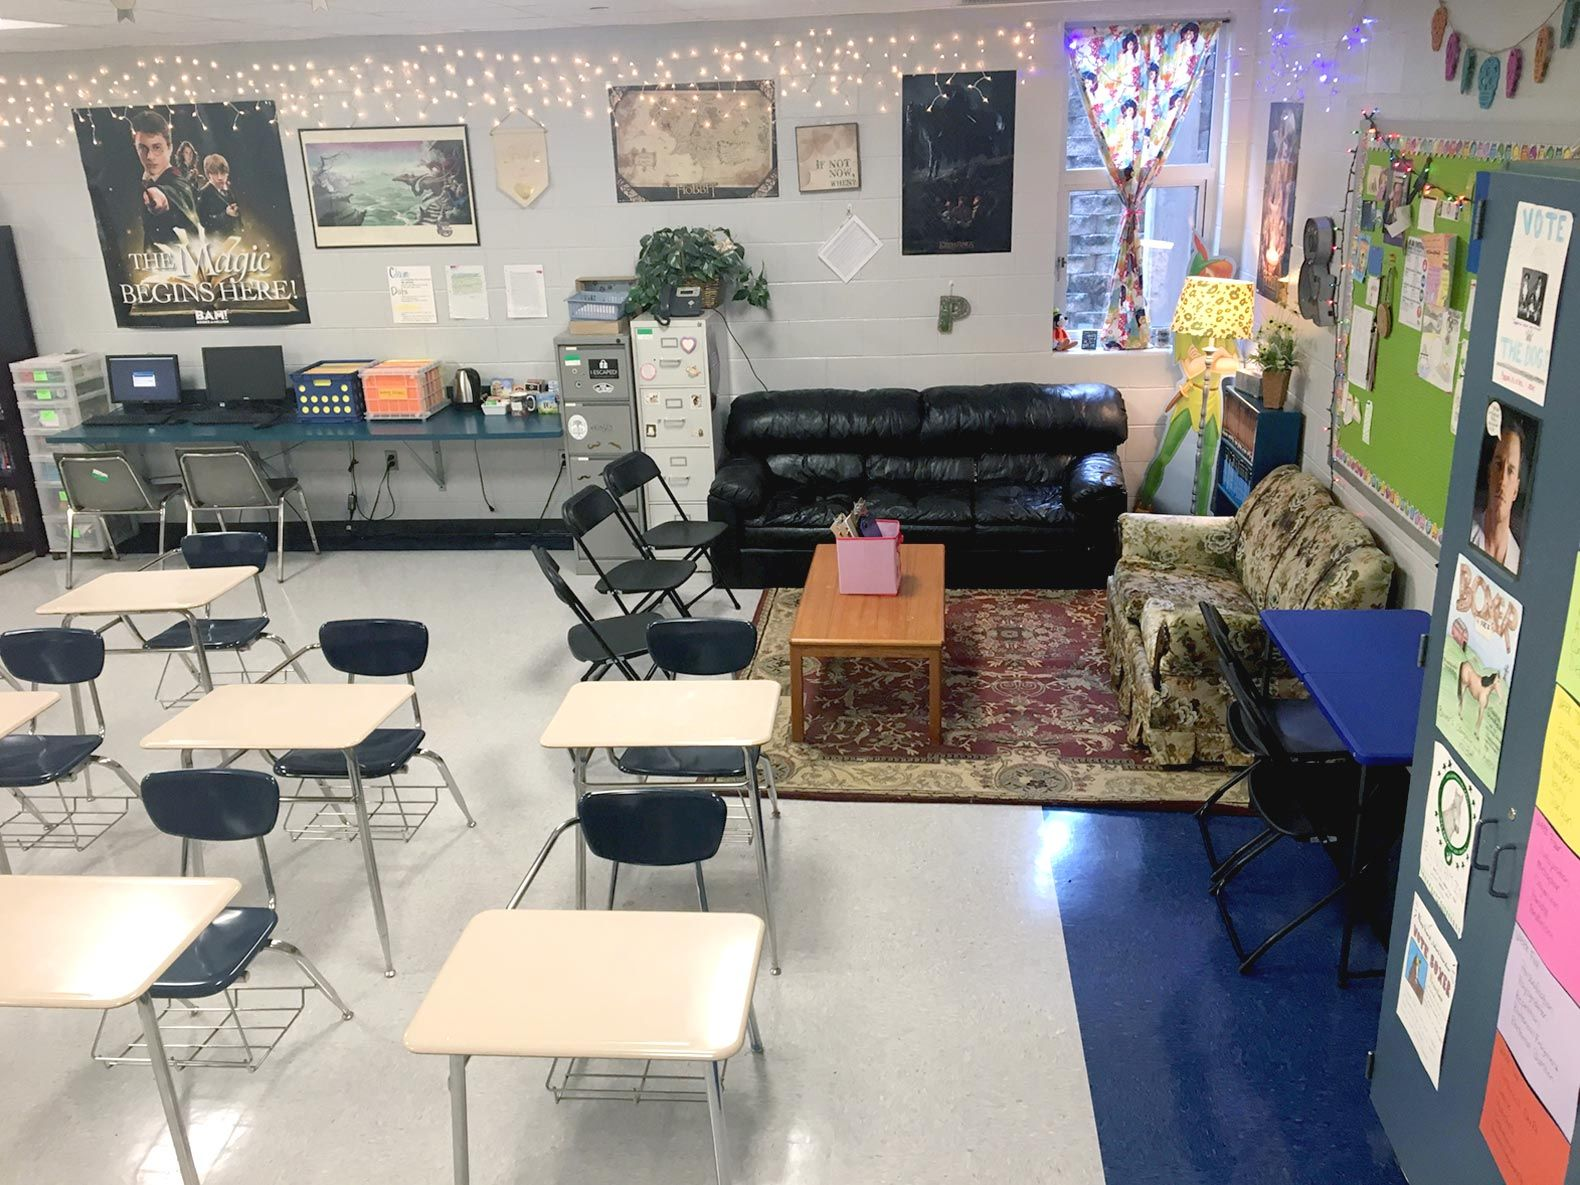 In addition to comfortable furniture, Polak kept some traditional seating, an arrangement that's typical of many of the high school classrooms we saw.